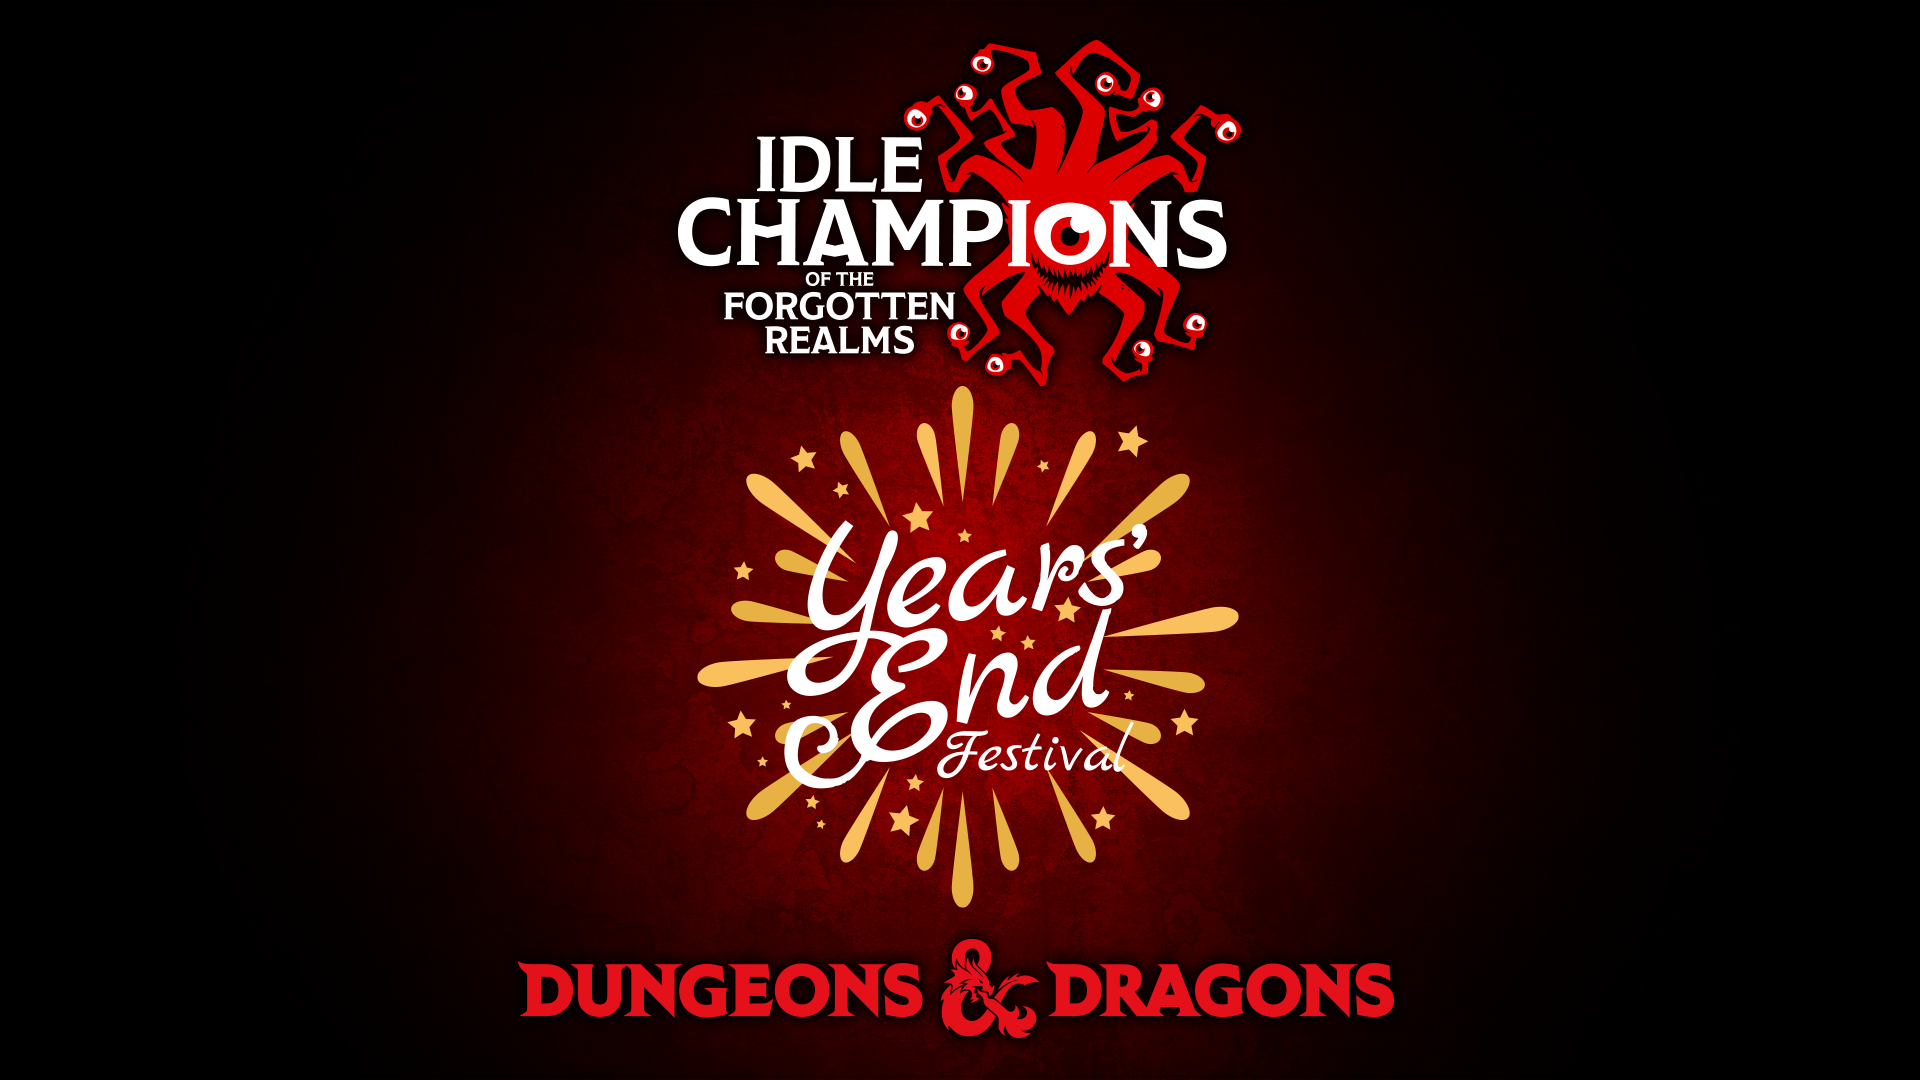 Dungeons & Dragons Years' End Festival